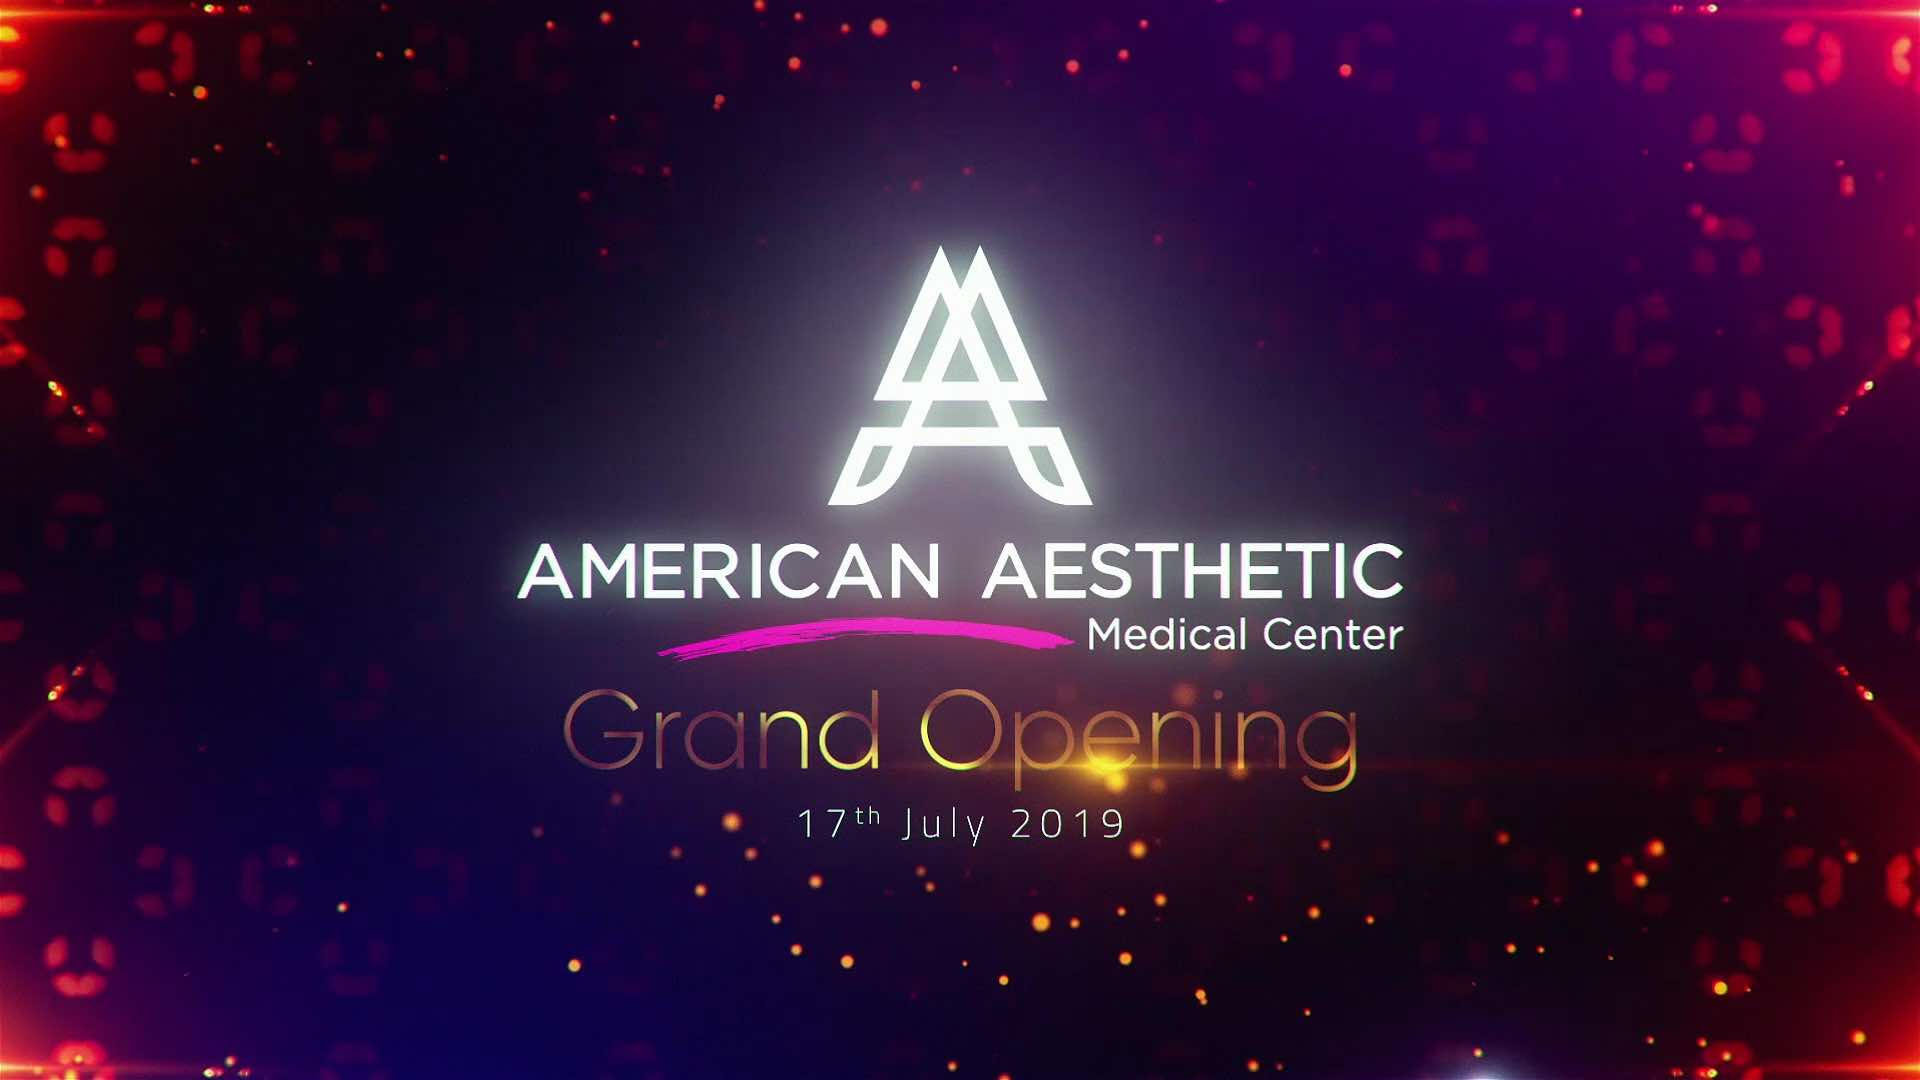 American Aesthetic Medical Center Inauguration